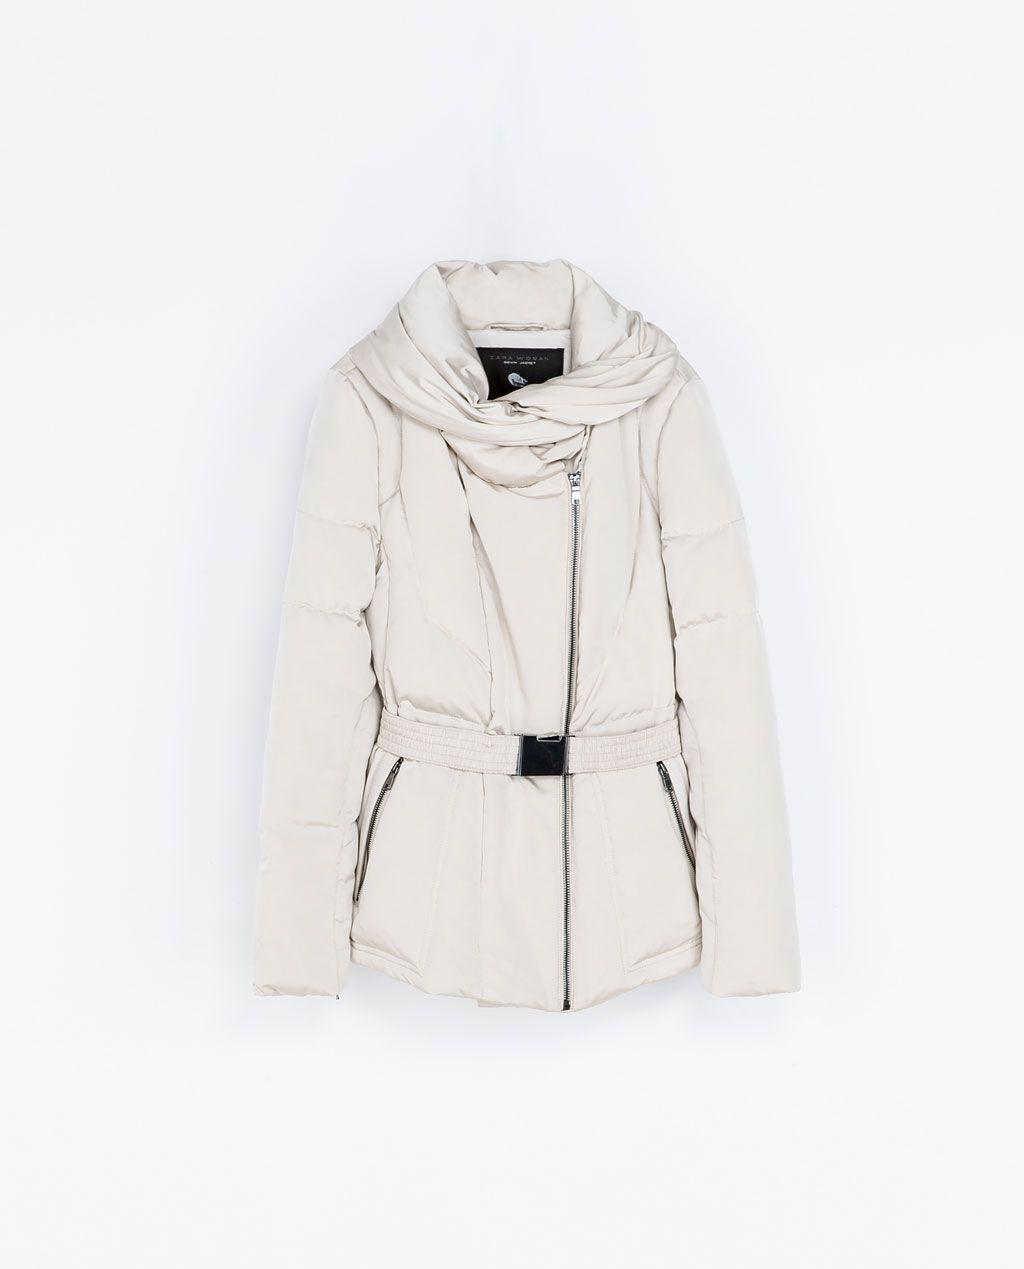 newest 39fbe d3ece ZARA - WOMAN - QUILTED ANORAK WITH WRAPAROUND COLLAR ...